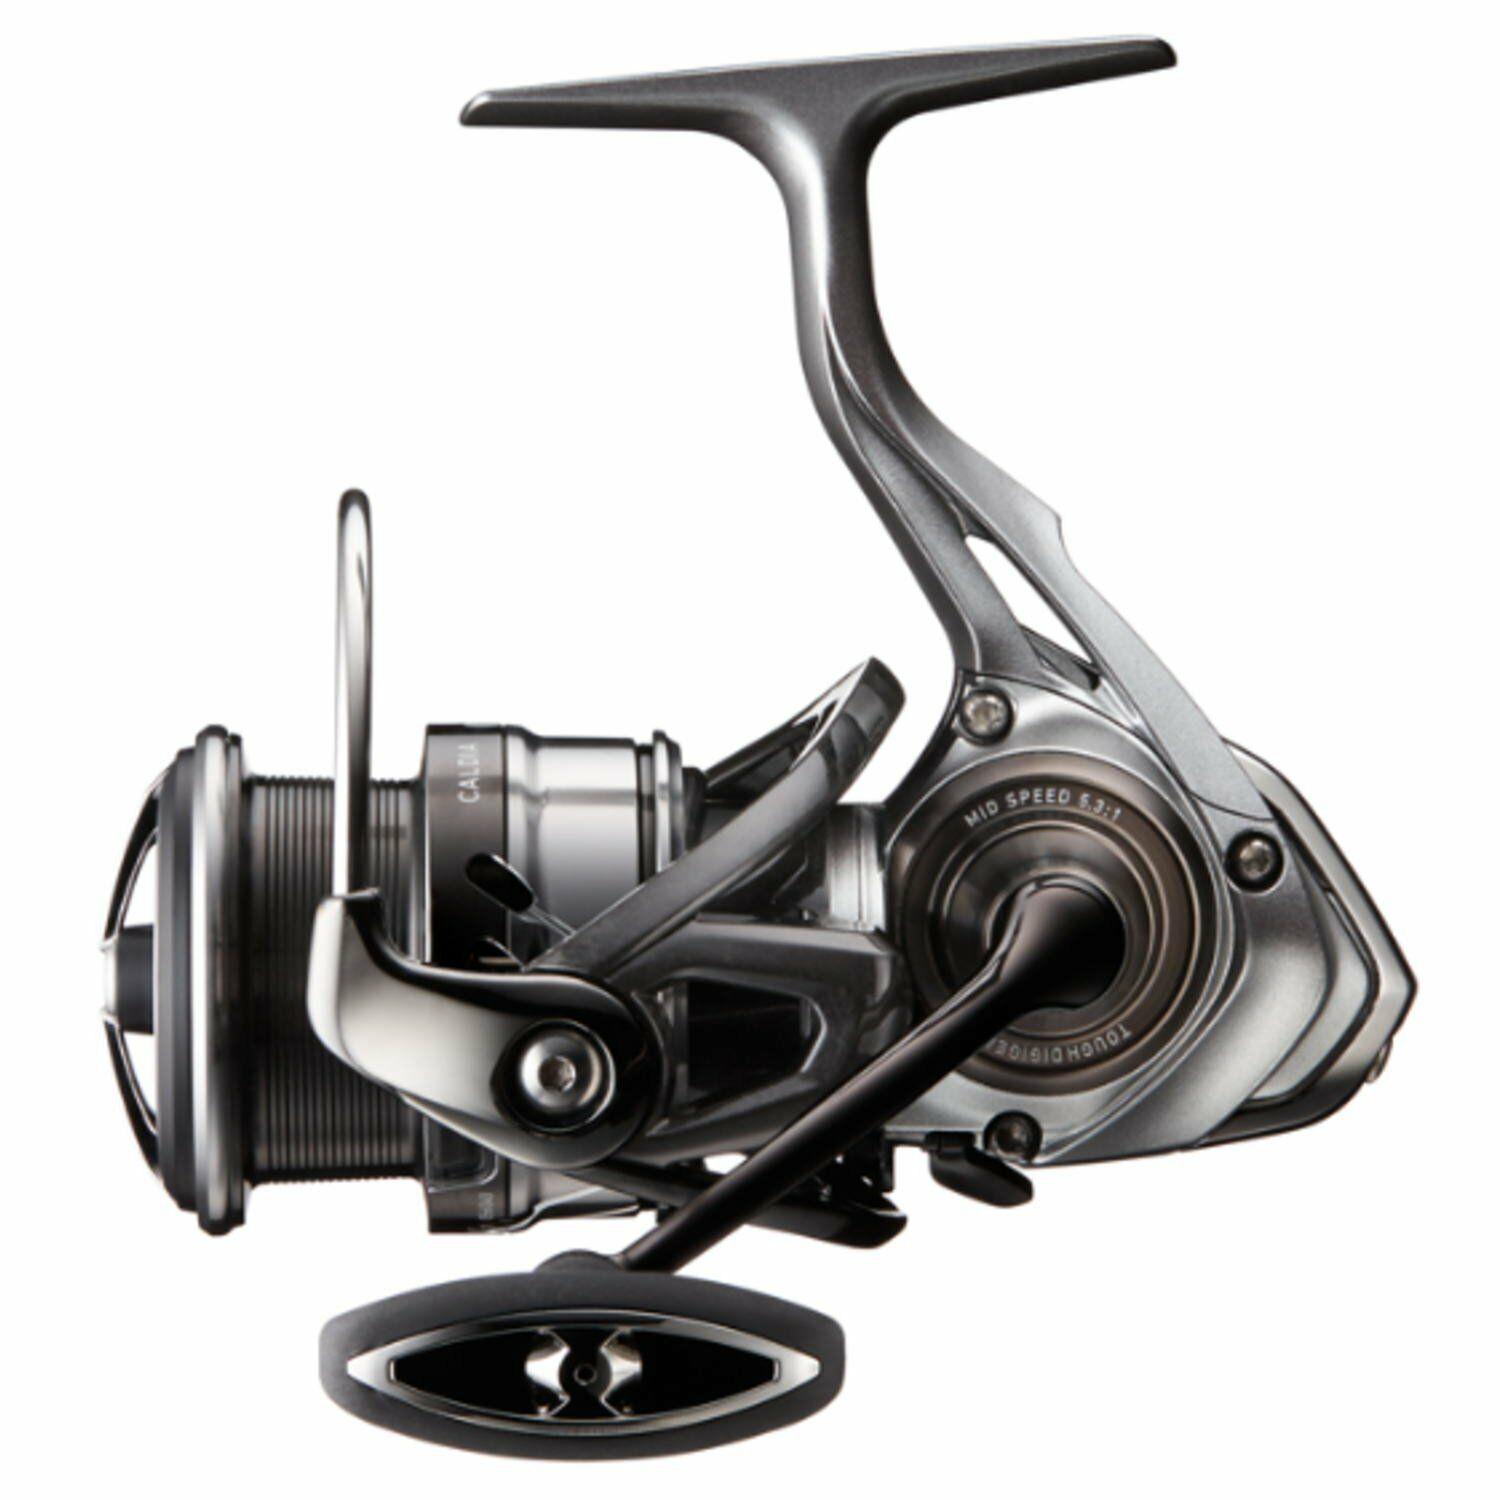 Daiwa 18 CALDIA LT2500S-XH Spinning Reel LIGHT TOUGH ABS II New